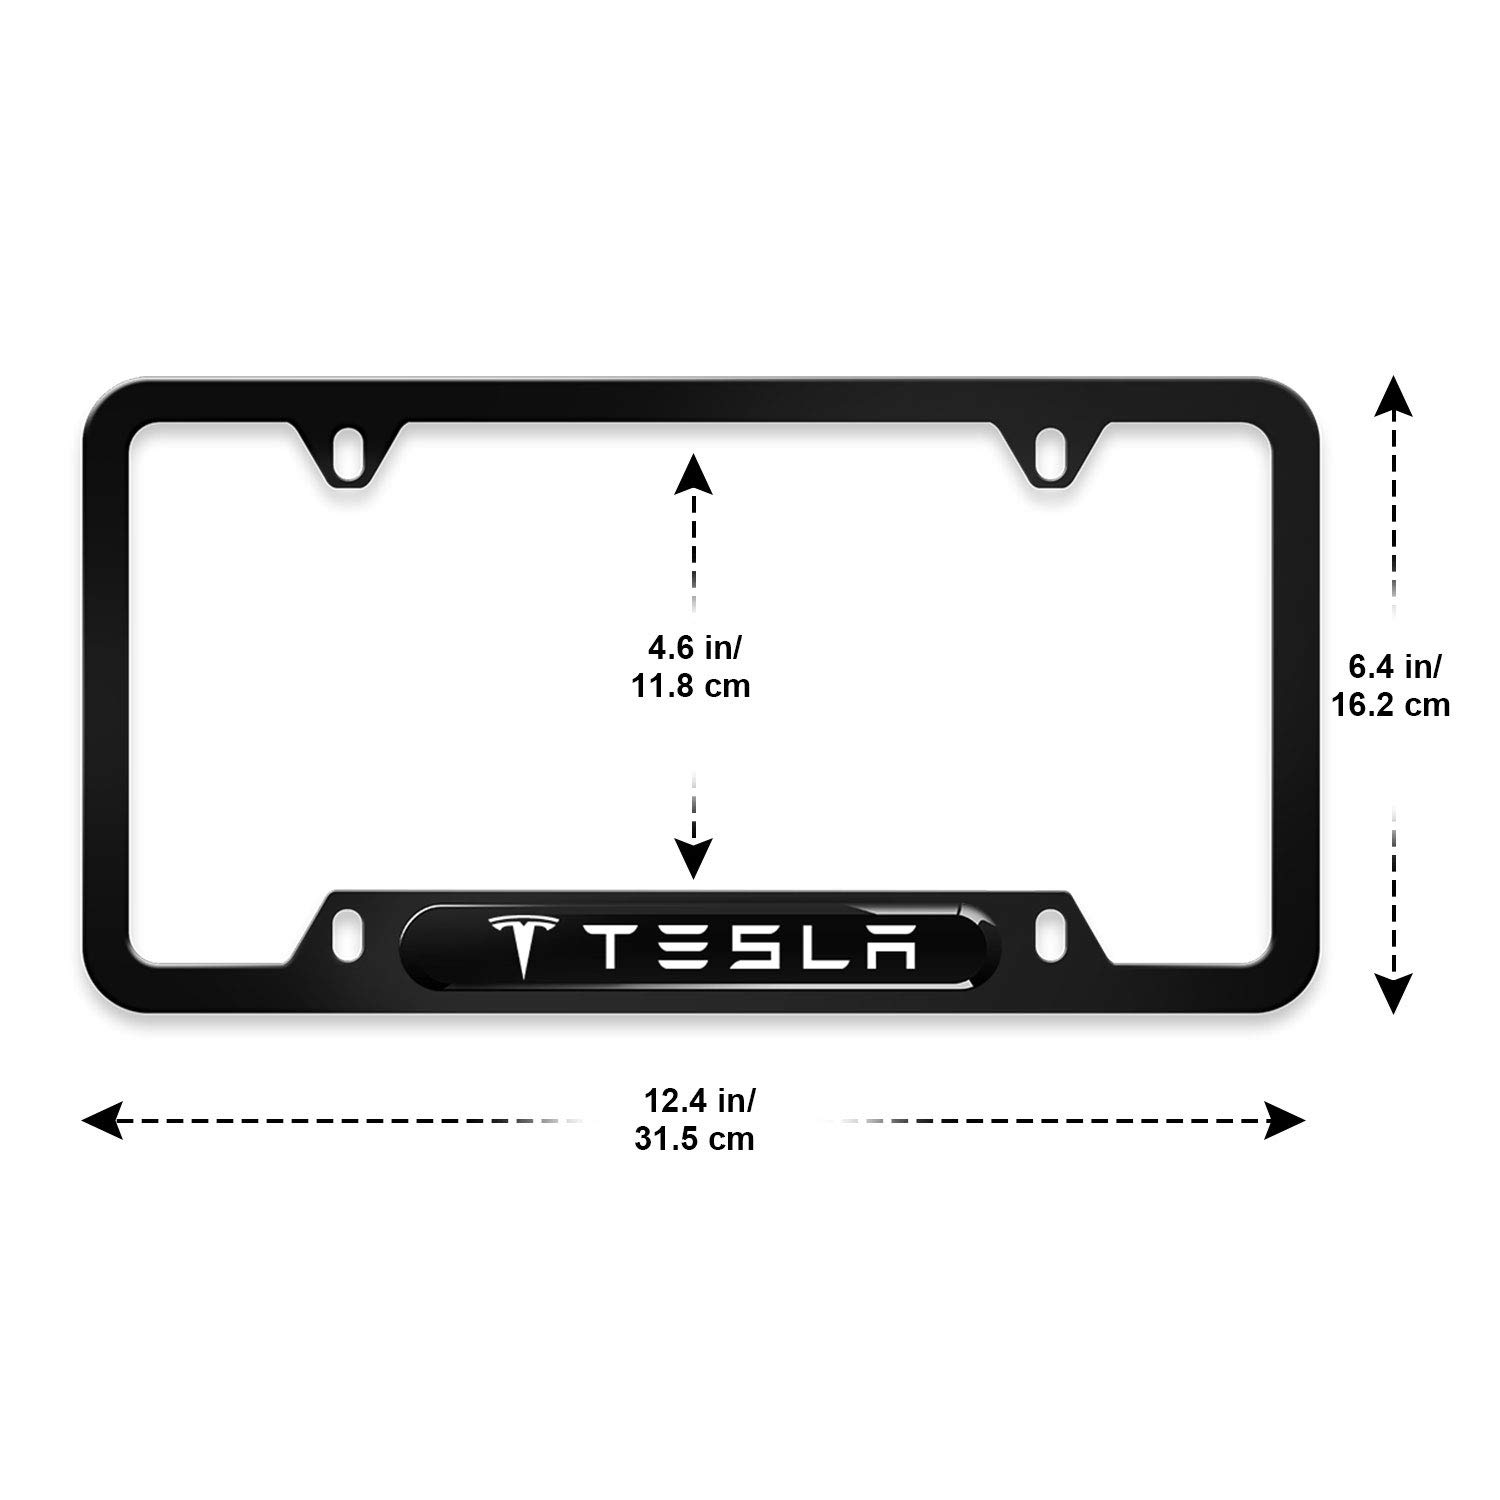 2X Tesla W Logo Stainless Steel License Plate Frame Rust Free W// Bolt Caps